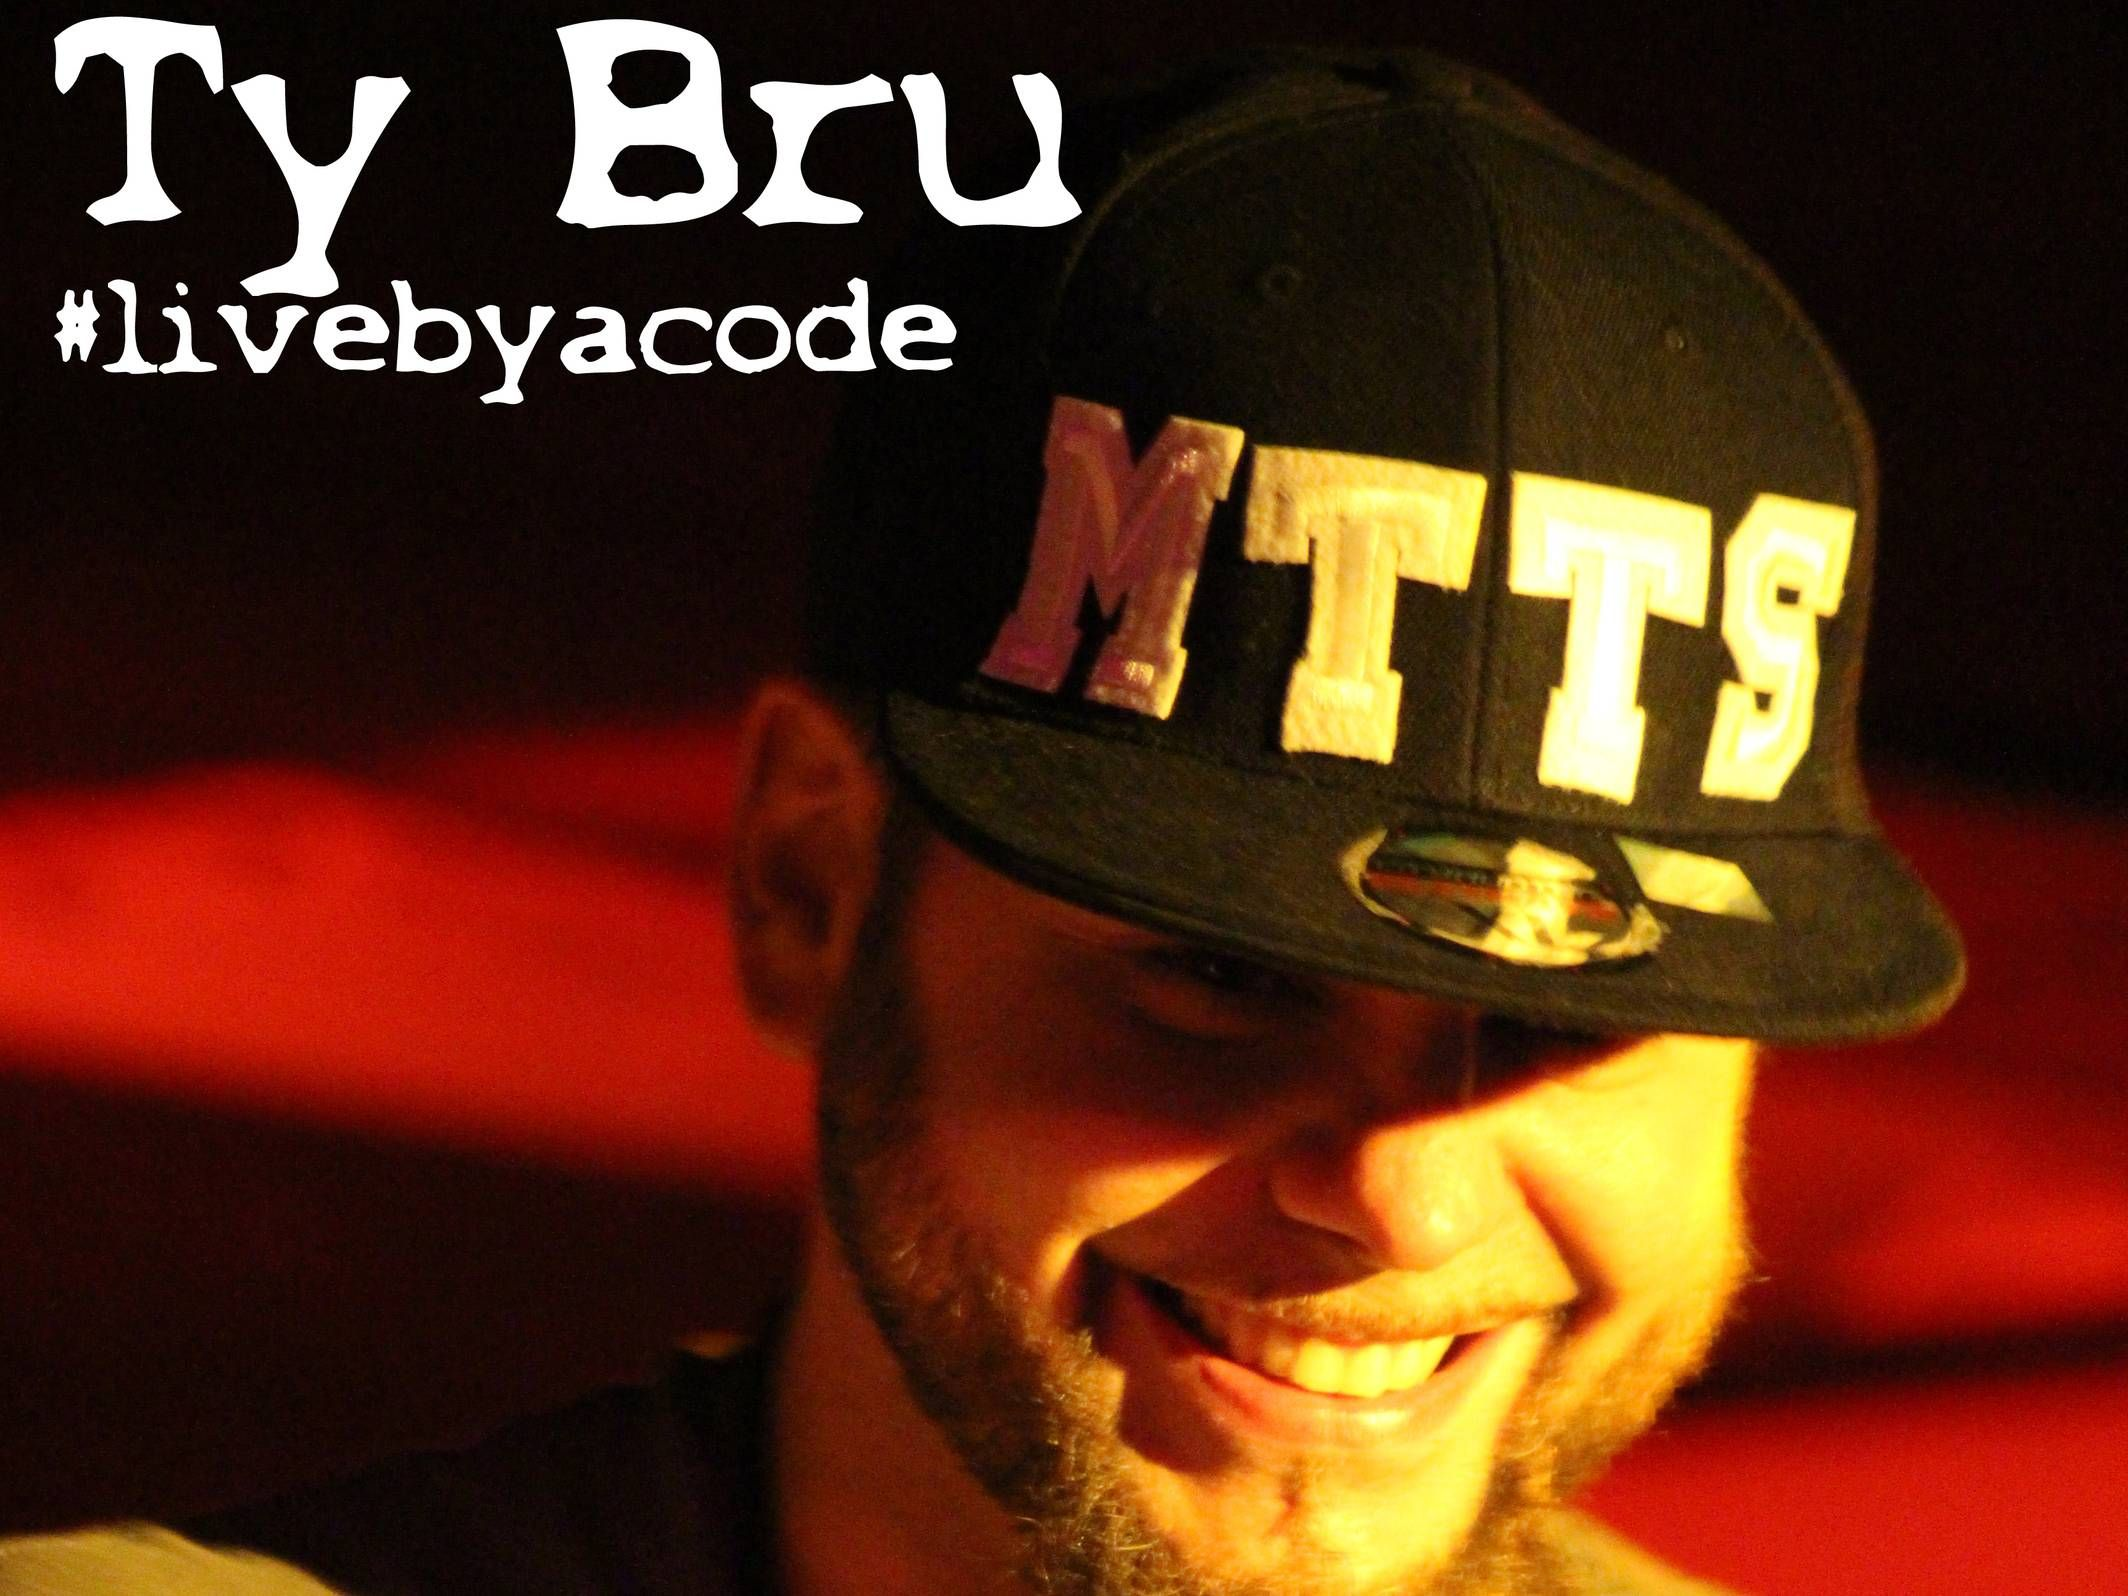 Check out Ty Bru on ReverbNation